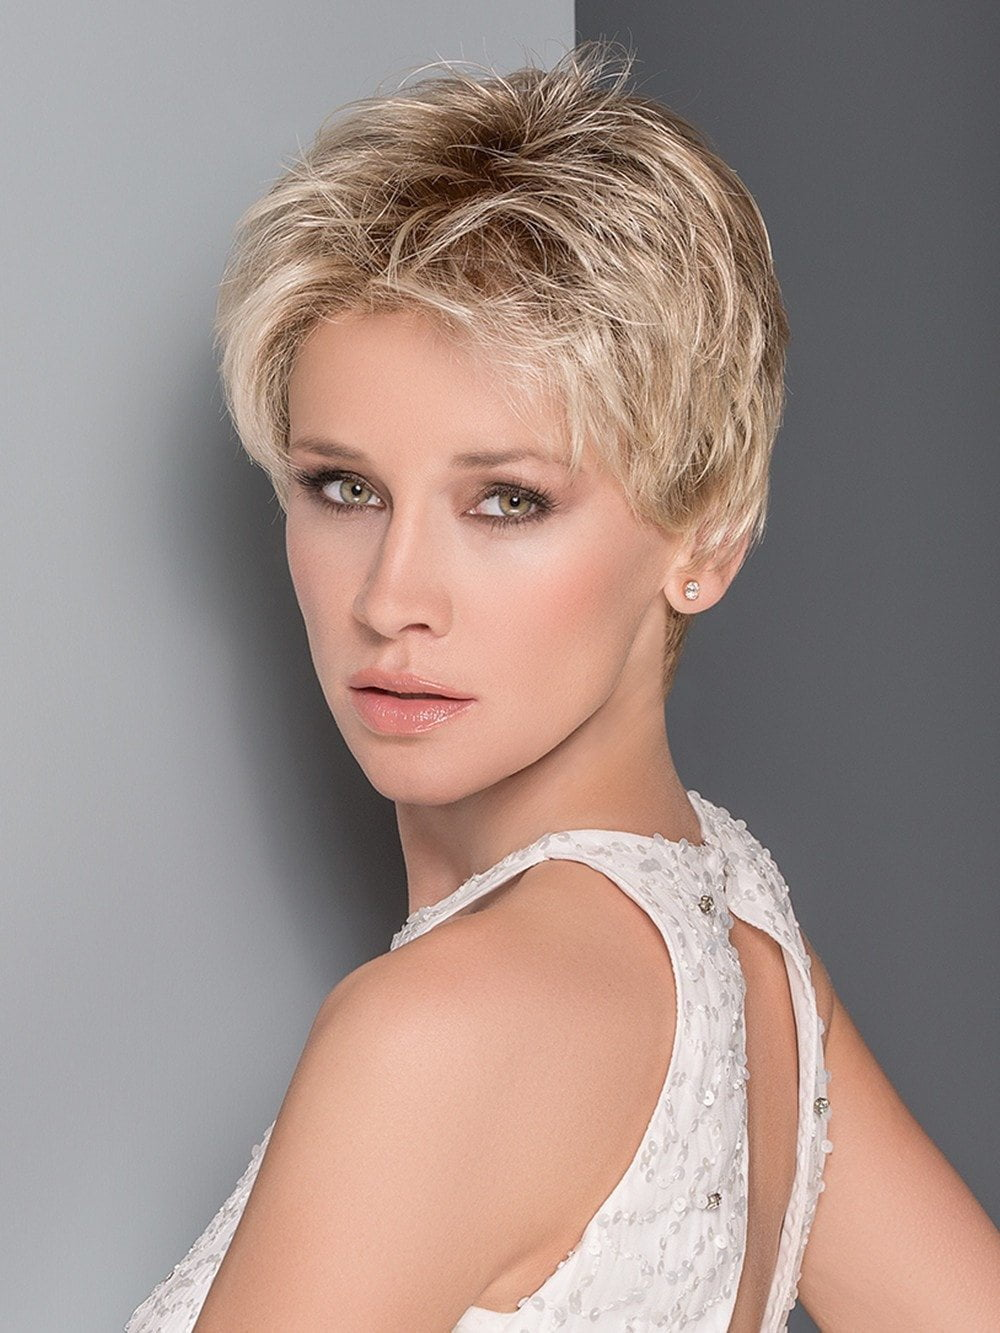 Ellen Wille Aura has an impeccable ear to ear extended lace front that offers styling versatility and a seamless, natural appearance.